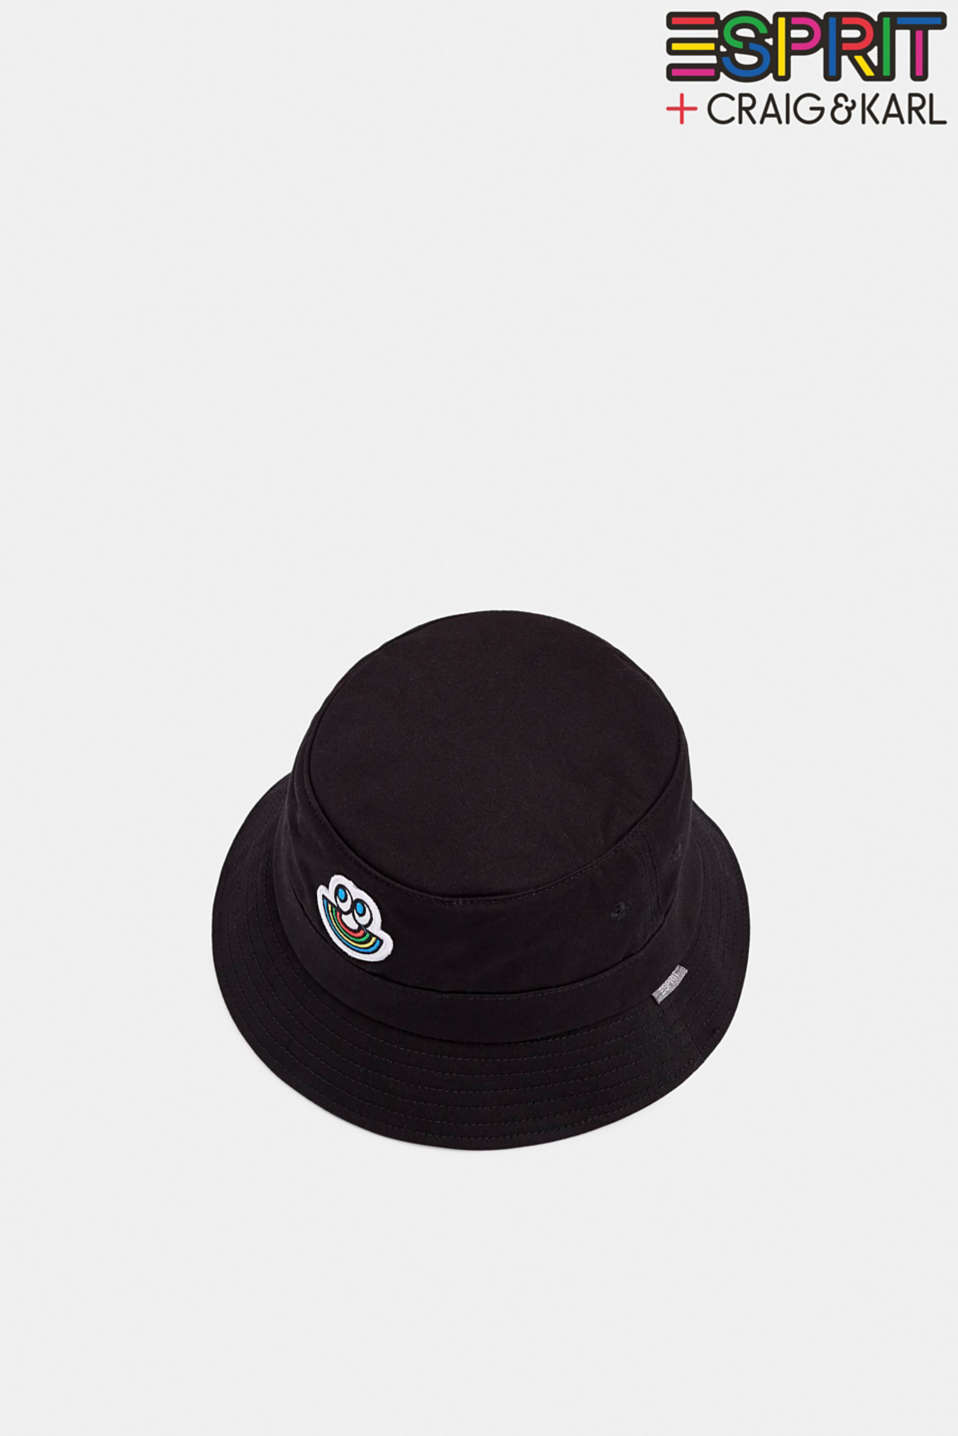 Esprit - CRAIG & KARL: Bucket hat, 100% cotton